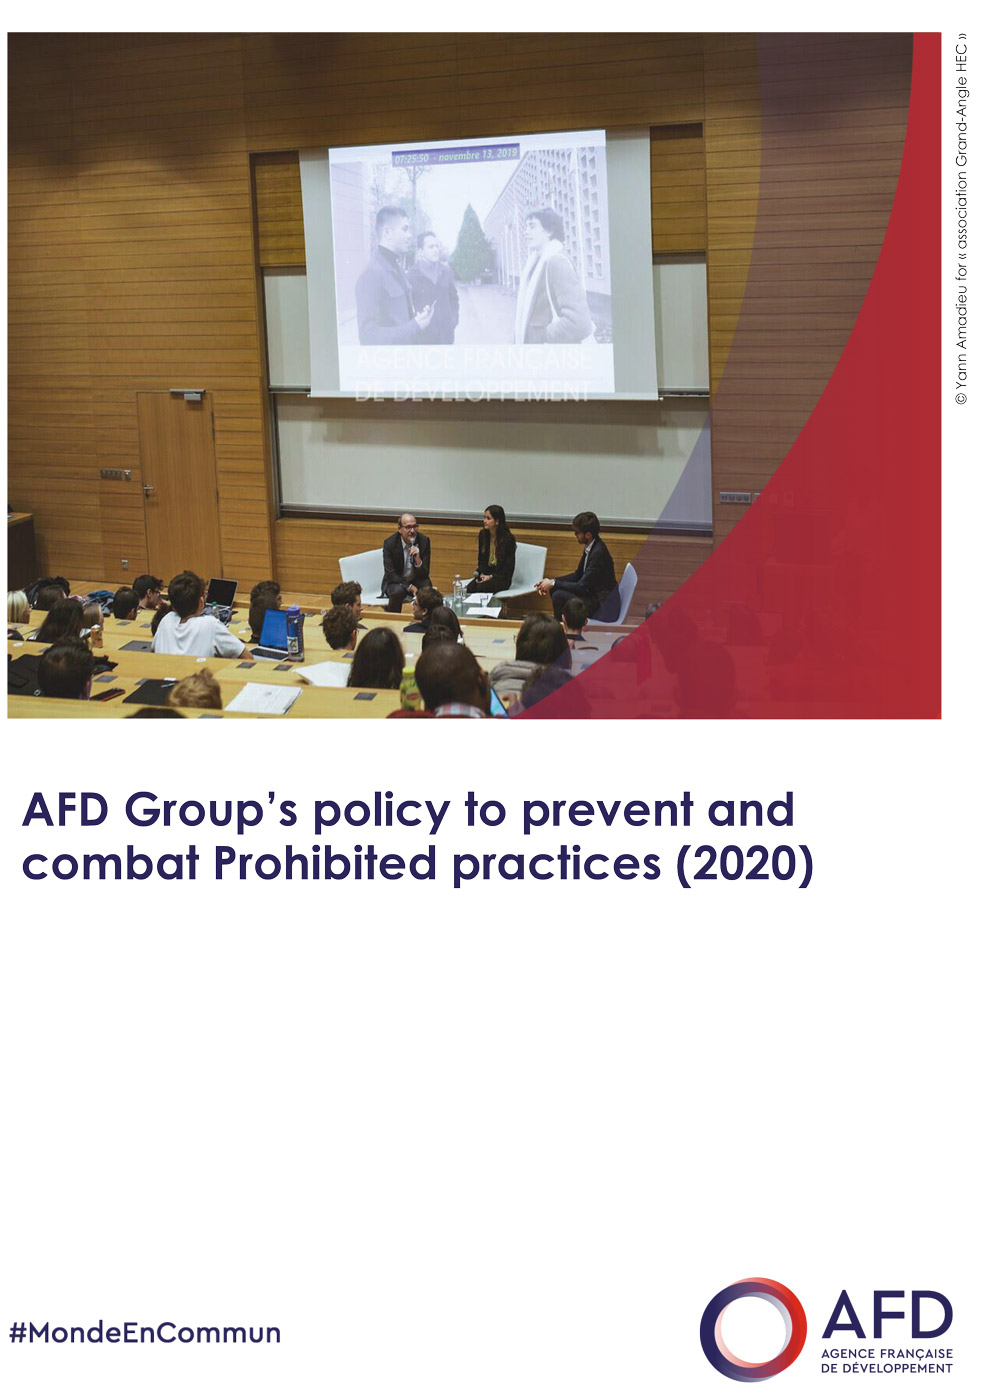 AFD Group's policy to prevent and combat Prohibited practices (2020)